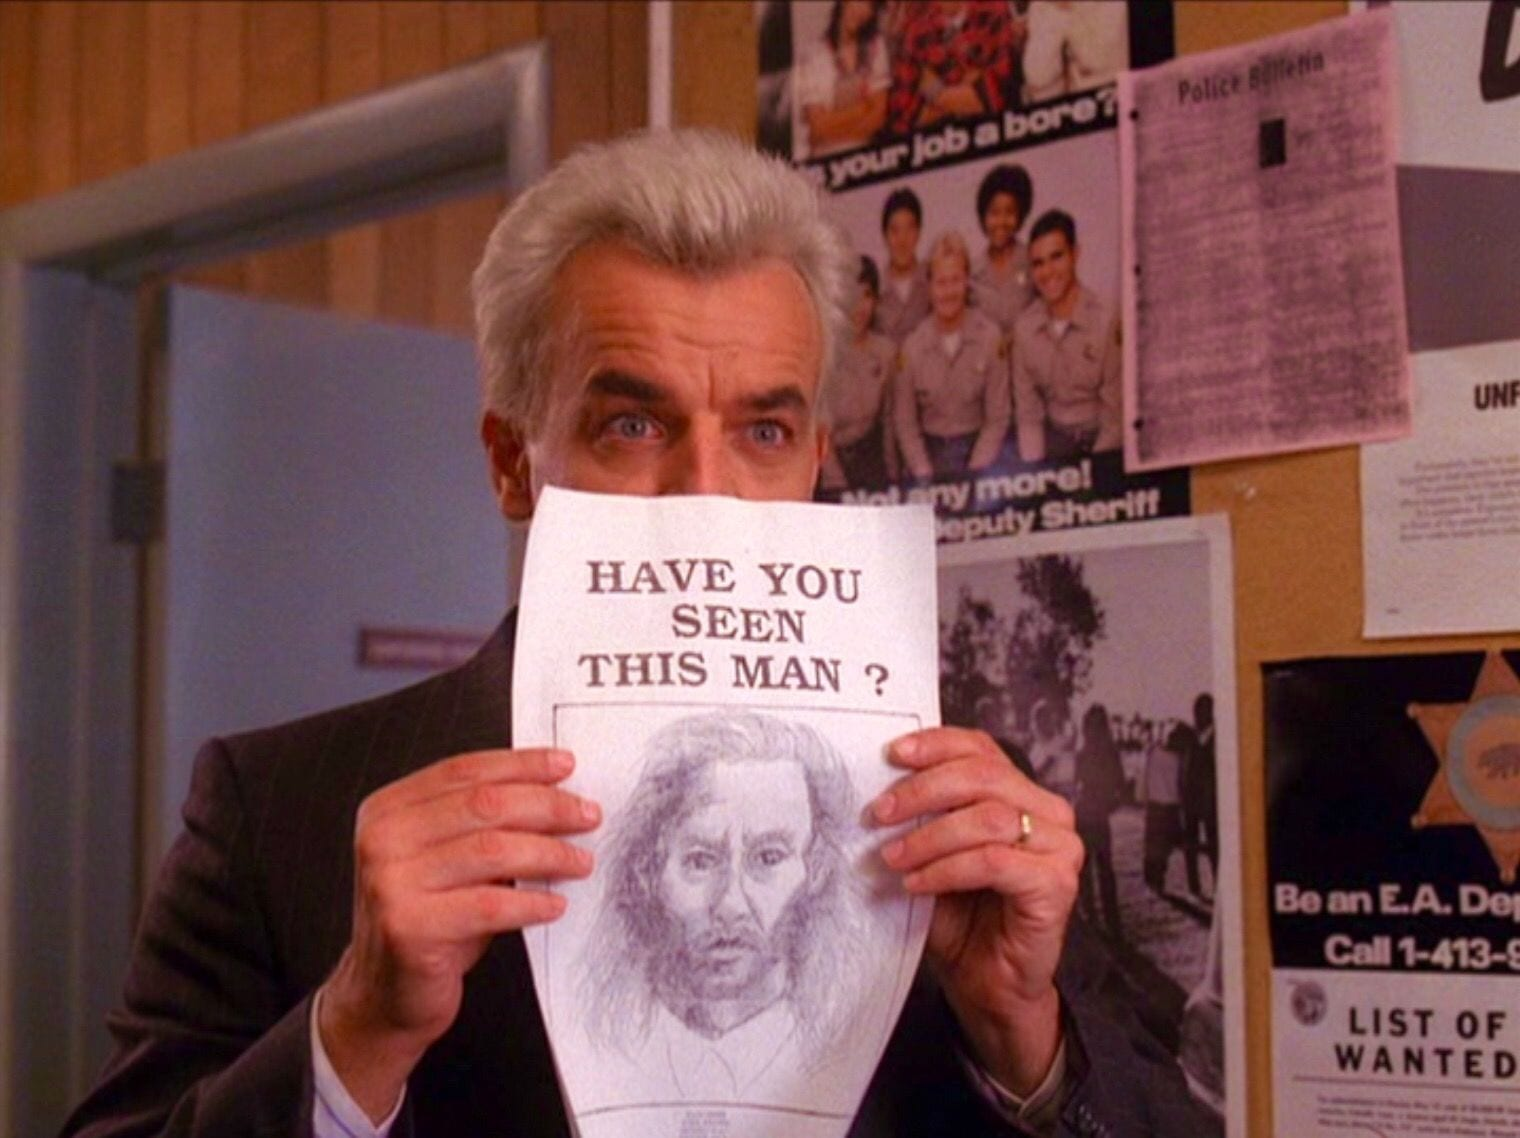 Leland Palmer holds up the artist impression picture of Bob